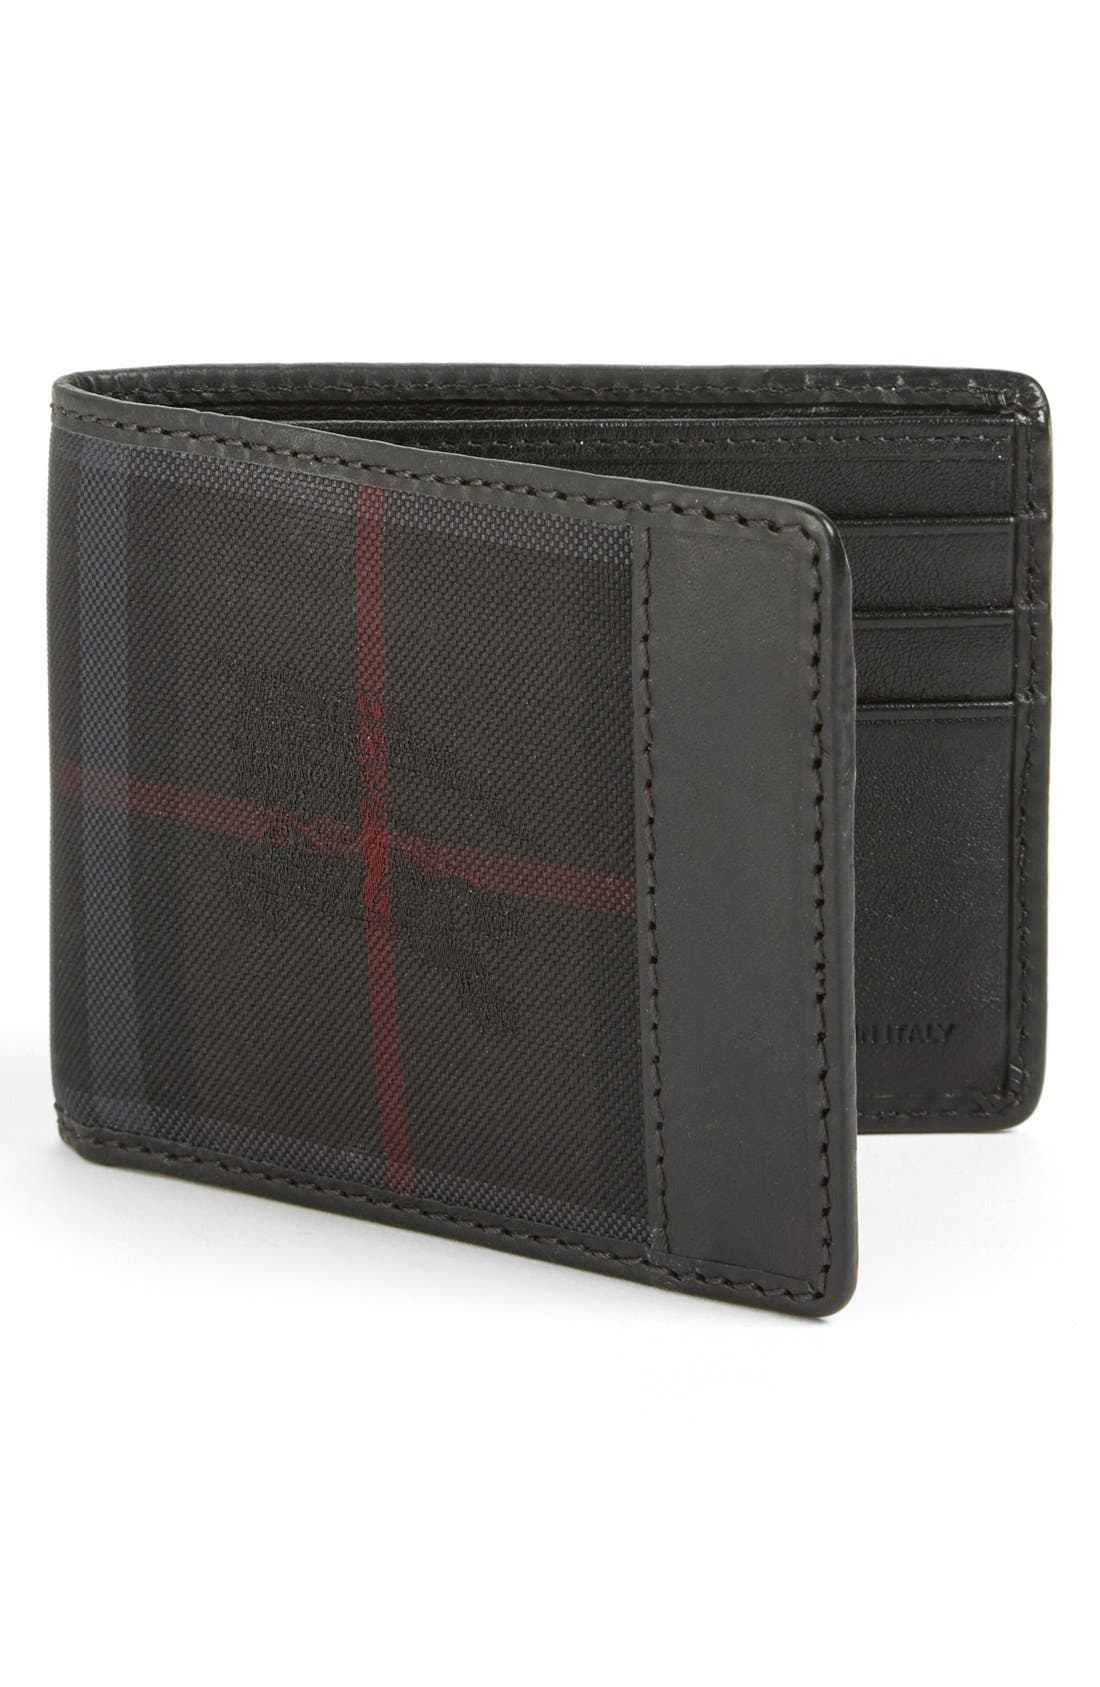 Burberry Check Wallet